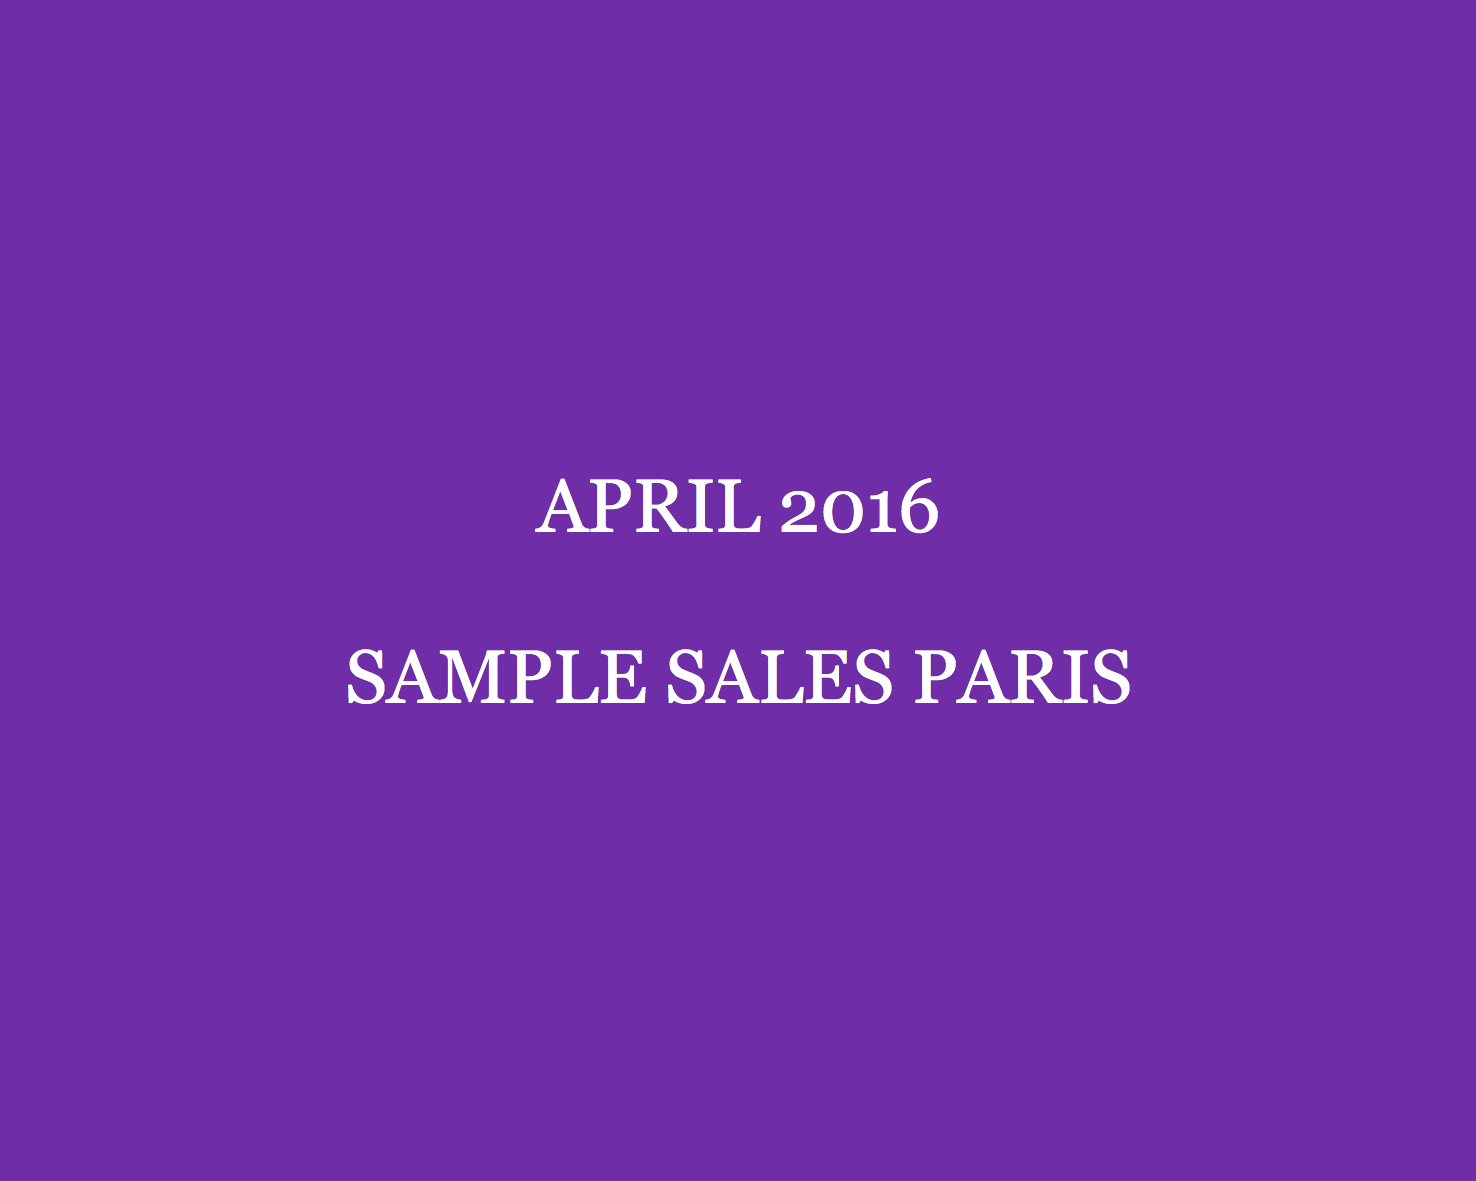 april-2016-sample-sales-paris-style-barista-paris-sample-sales-paris-ventes-privees-vente-privee-ventes-presses